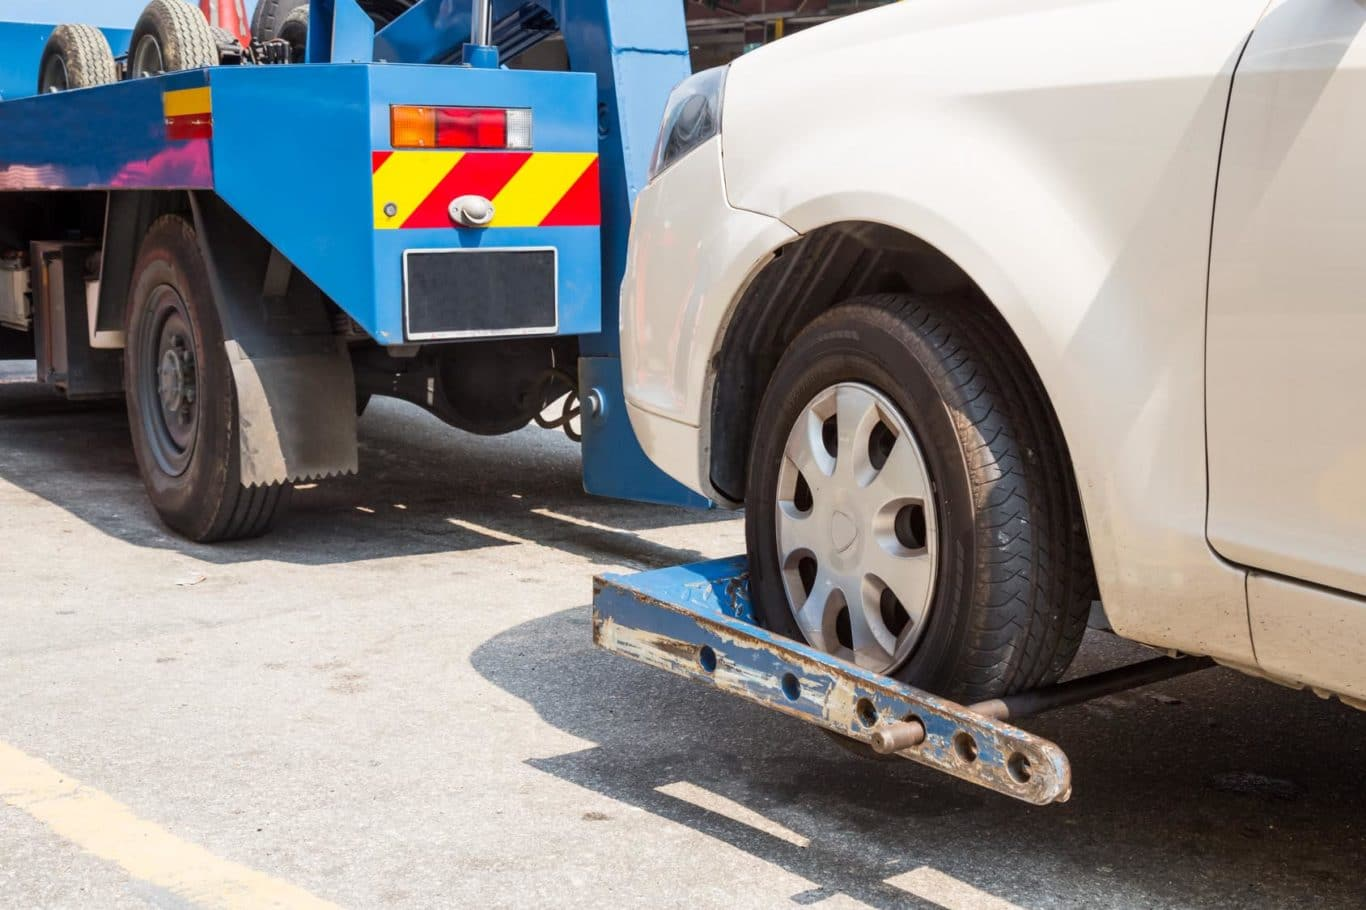 Coolkenno expert Car Towing services